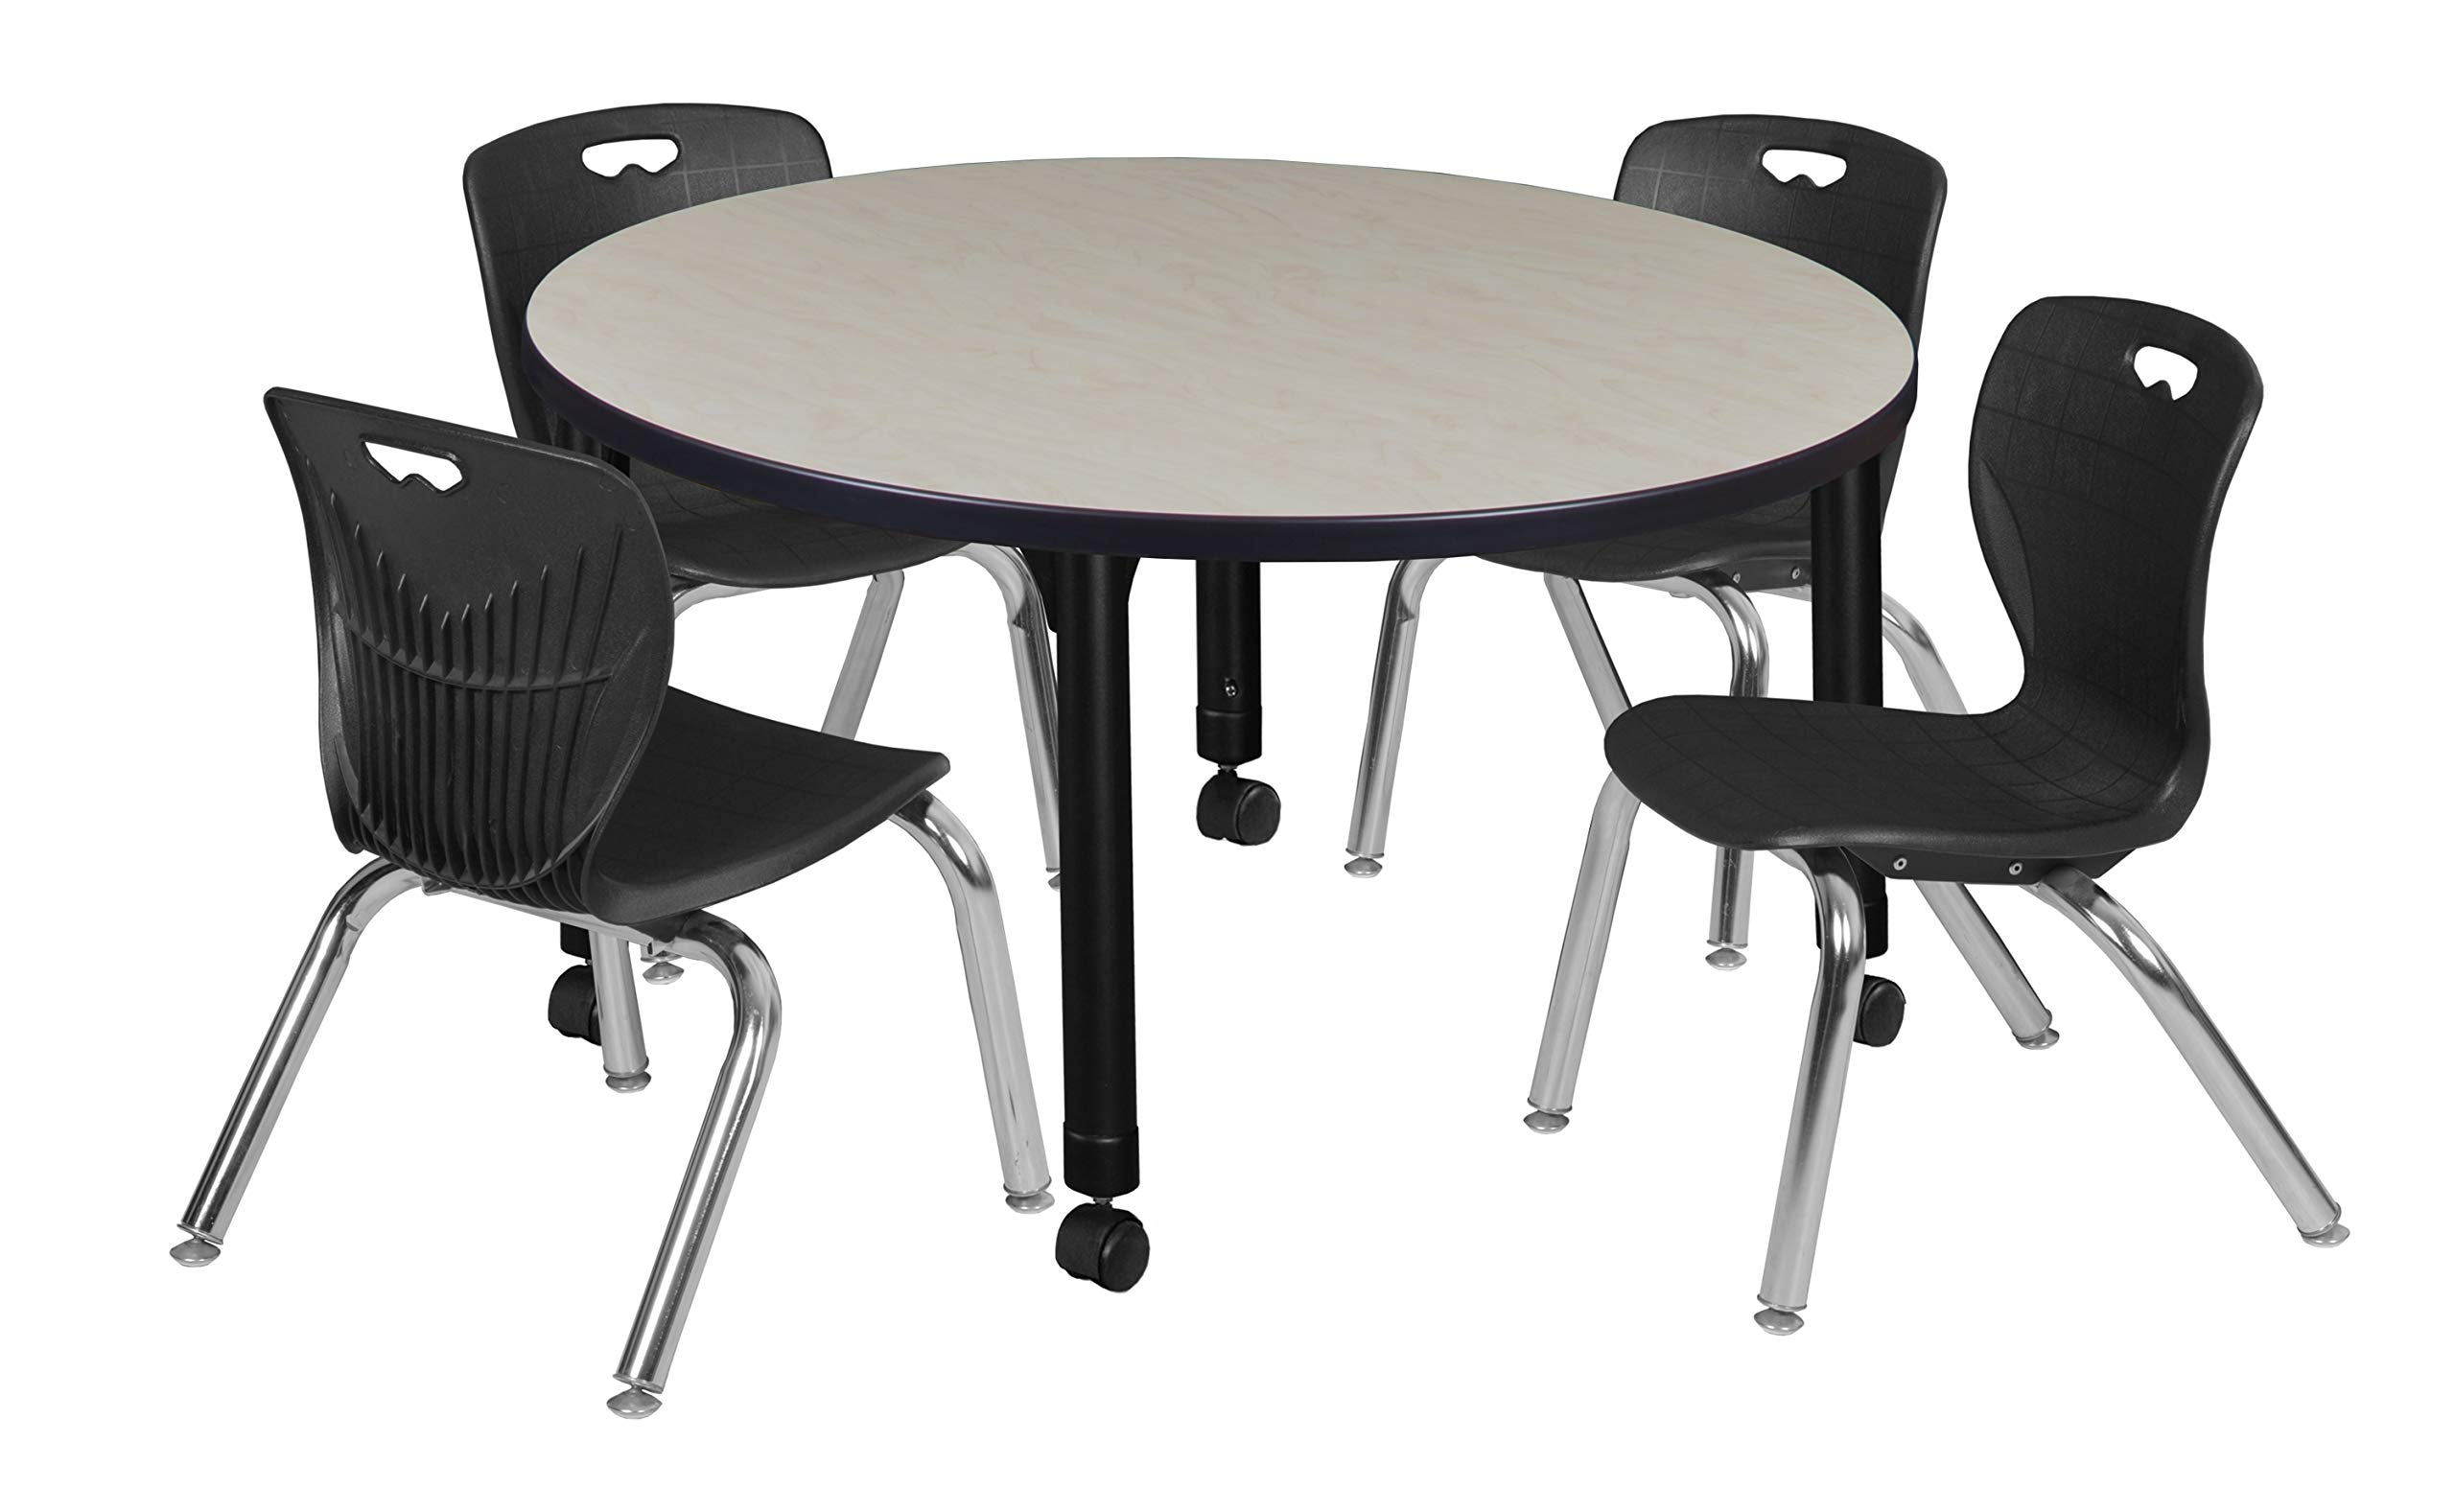 Regency TB42RNDPLAPCBK45BK Kee Height Adjustable Mobile Classroom Table Set with Four 12'' Andy Chairs, 42'', Maple/Black by Regency